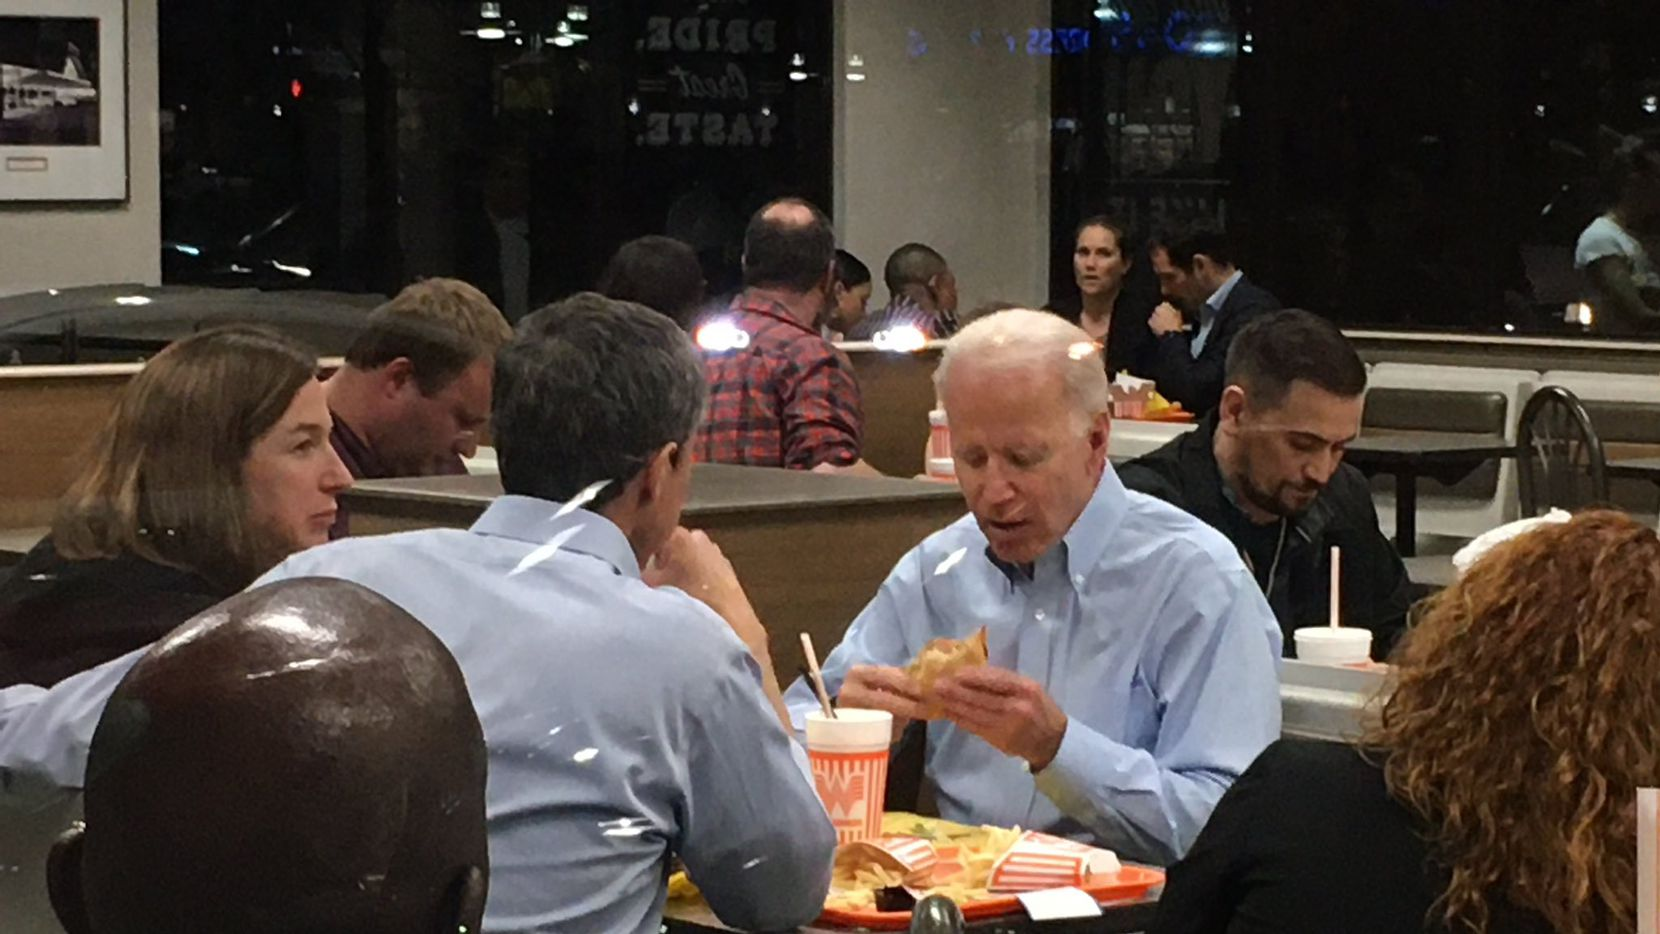 Vice presidential candidate Joe Biden joins Beto and Amy O'Rourke at Whataburger in Dallas after Beto O'Rourke endorsed Biden for the Democratic nomination for president in Dallas on Monday, March 2.